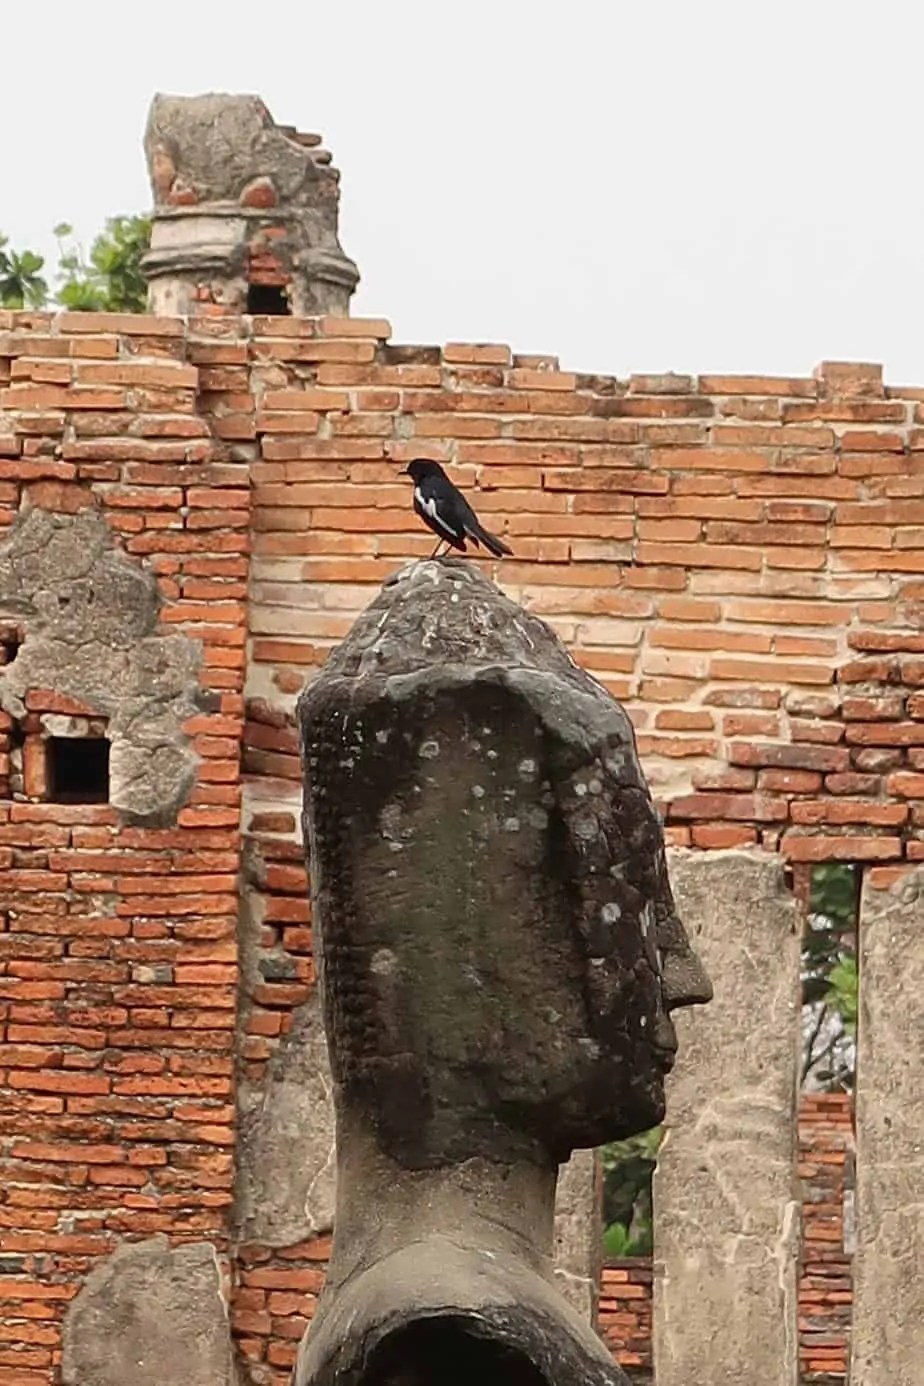 Bird standing on a Buddha relic at Wat Maha That